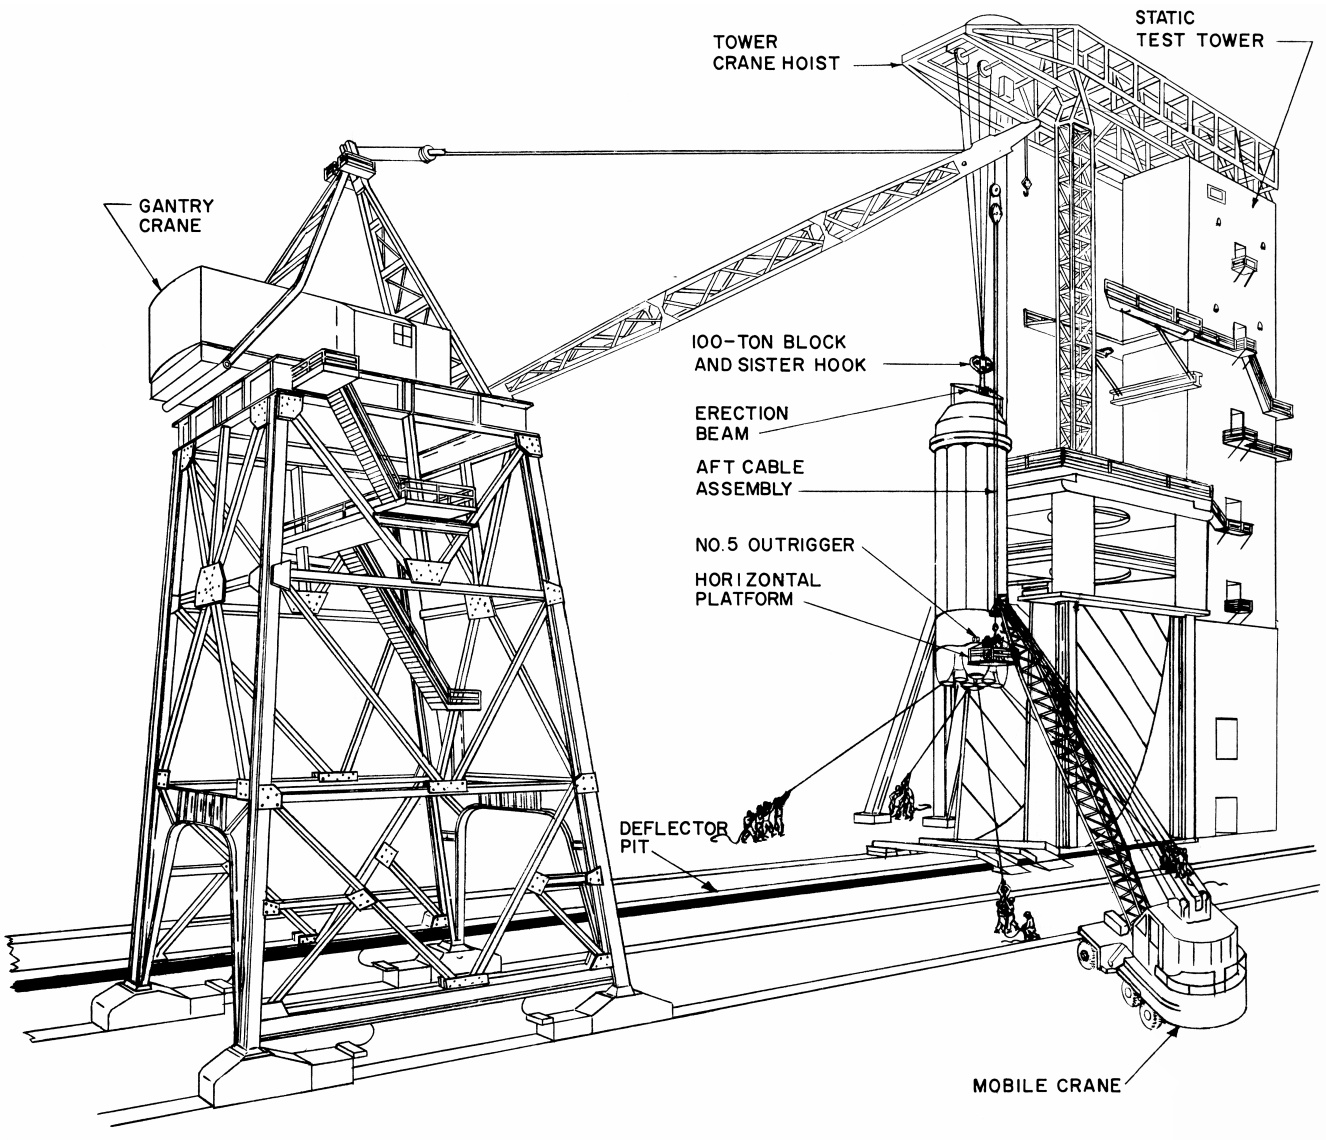 Index Of Info Static Test Tower Gantry Crane